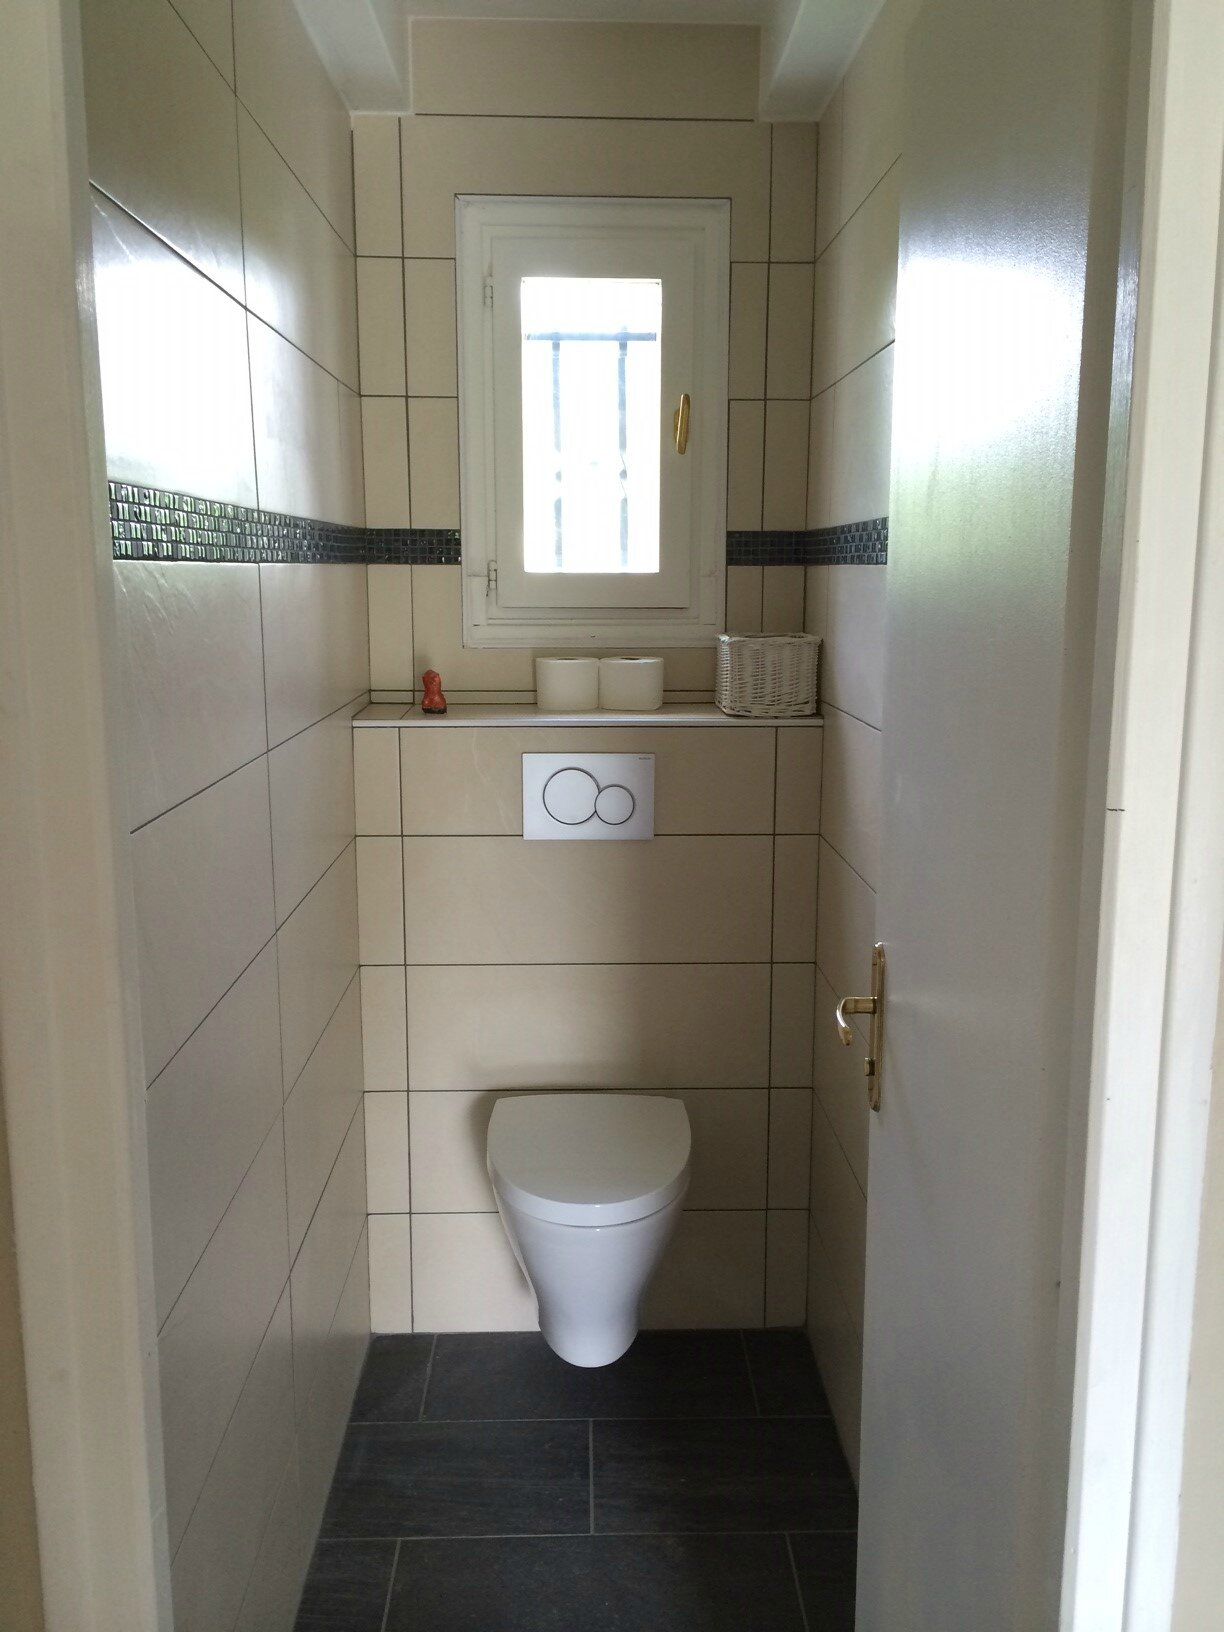 Wc suspendu carrelagebommart - Wc suspendu carrelage ...